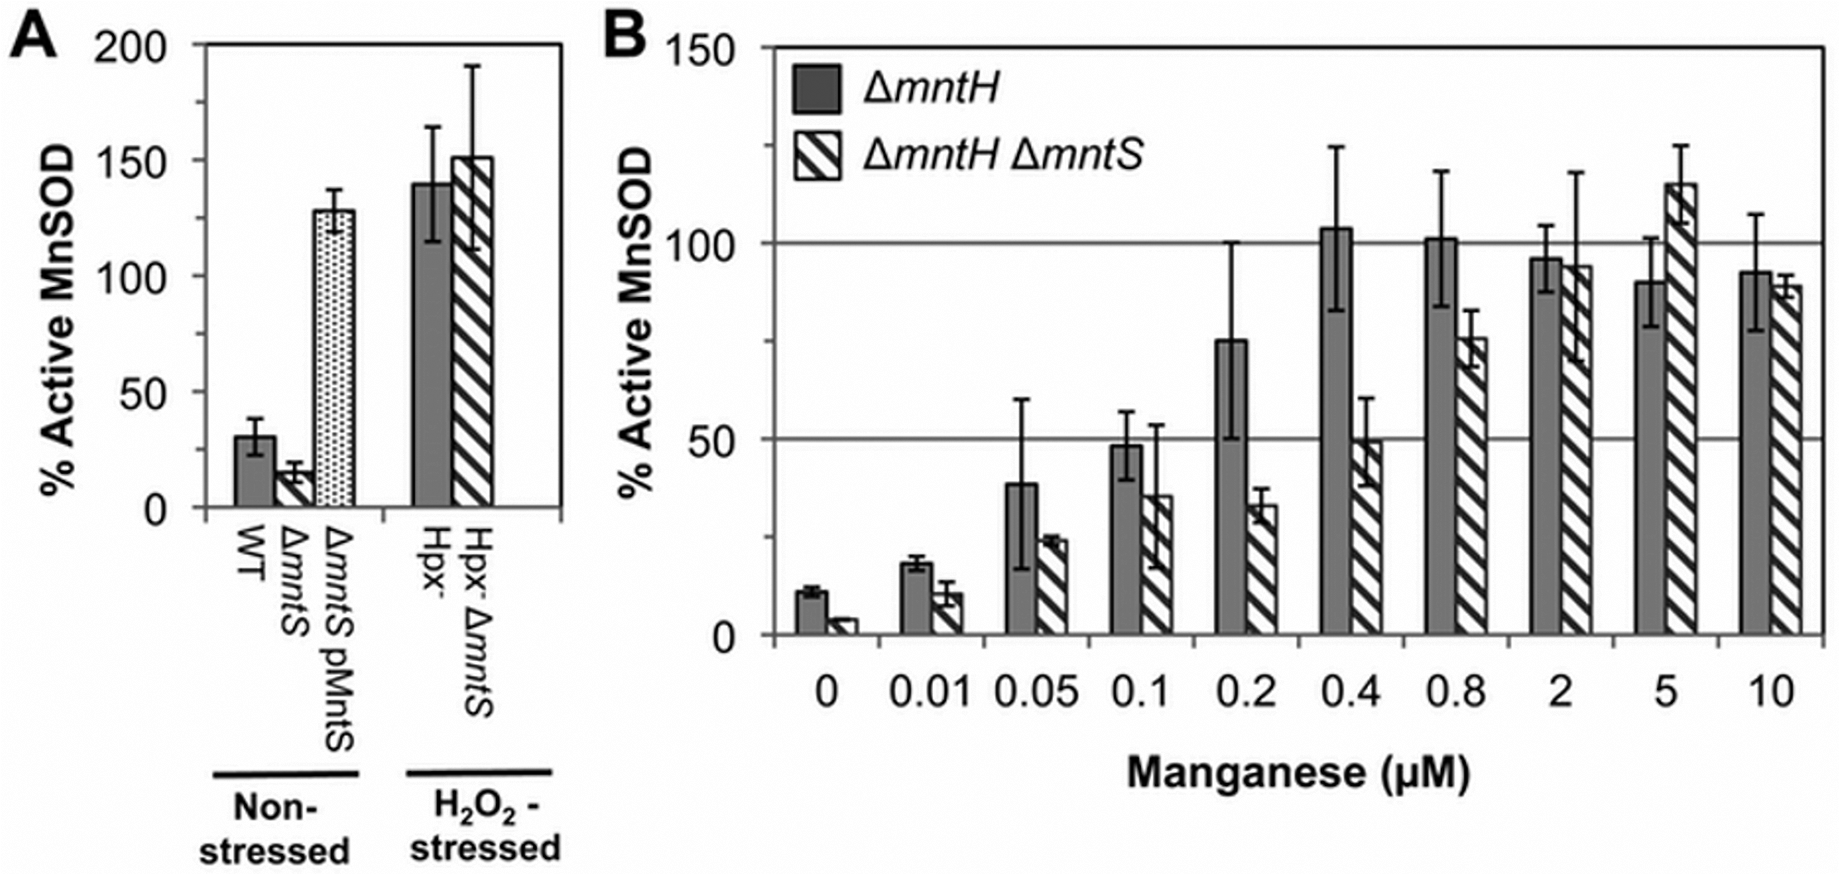 MntS facilitates the activation of manganese-dependent superoxide dismutase.